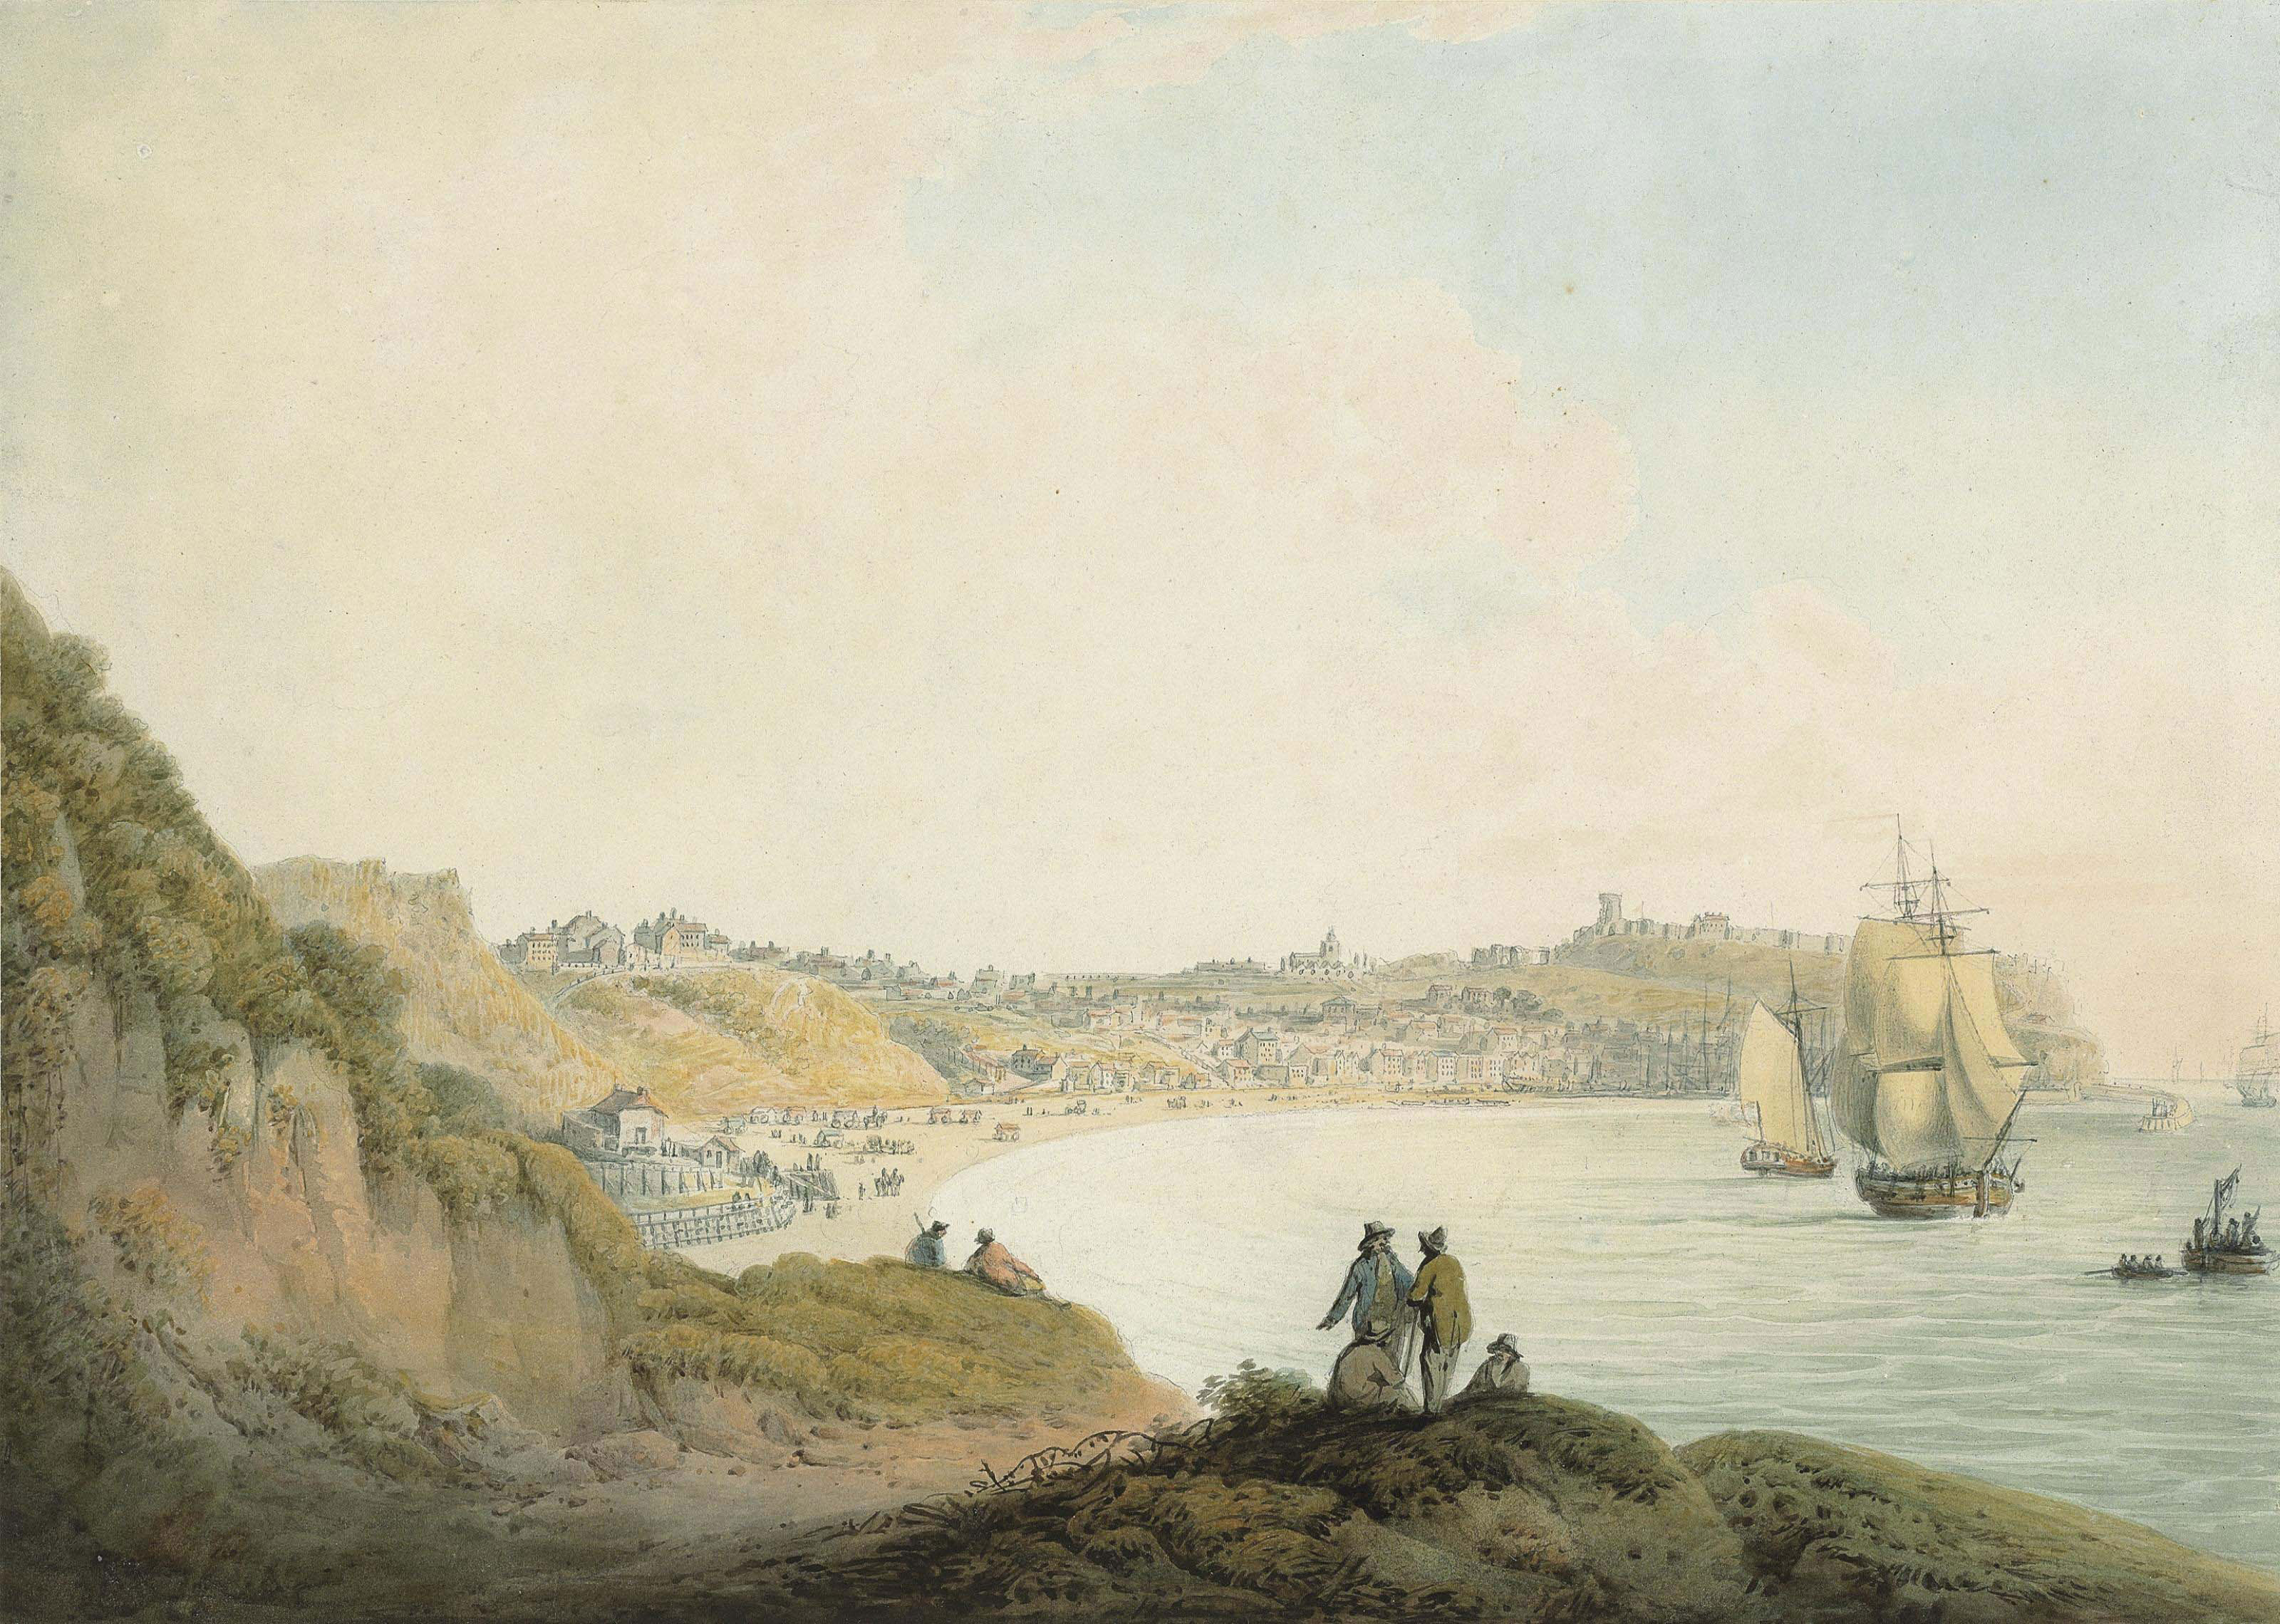 Figures conversing on a hill overlooking ships anchored in Scarborough Bay, the castle beyond